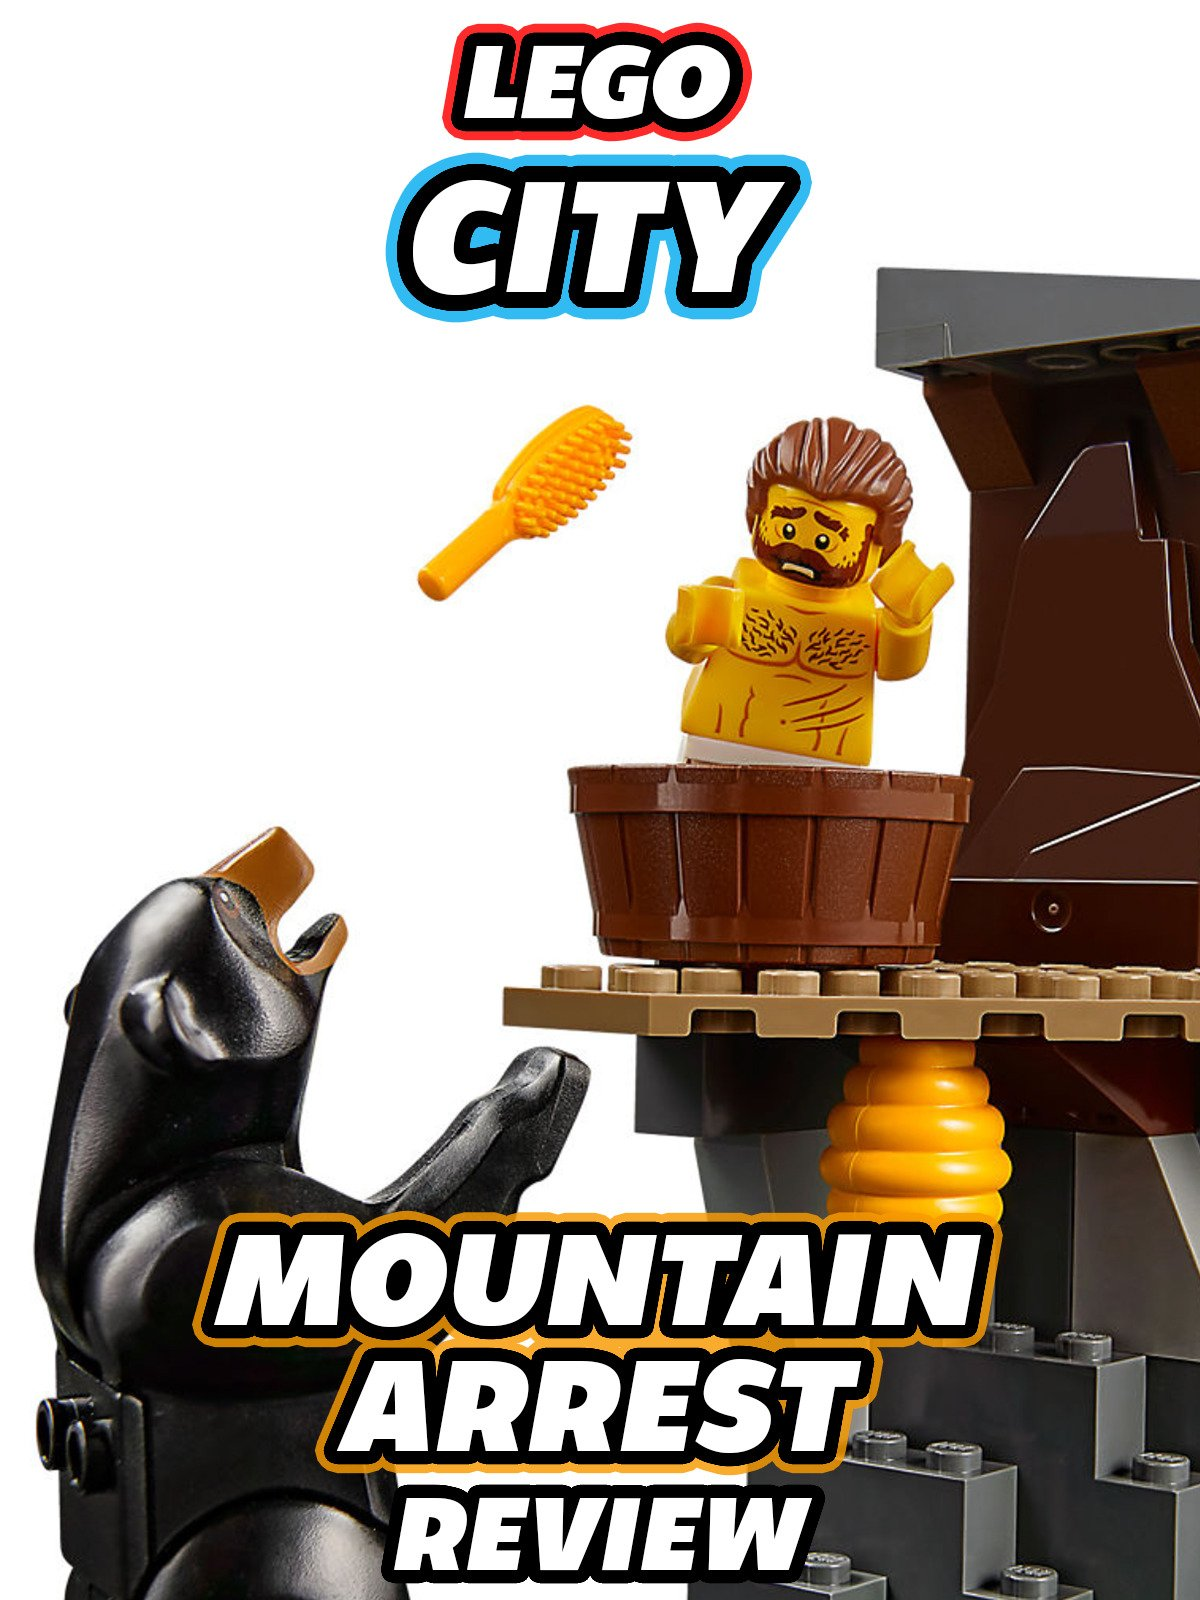 Review: Lego City Mountain Arrest Review